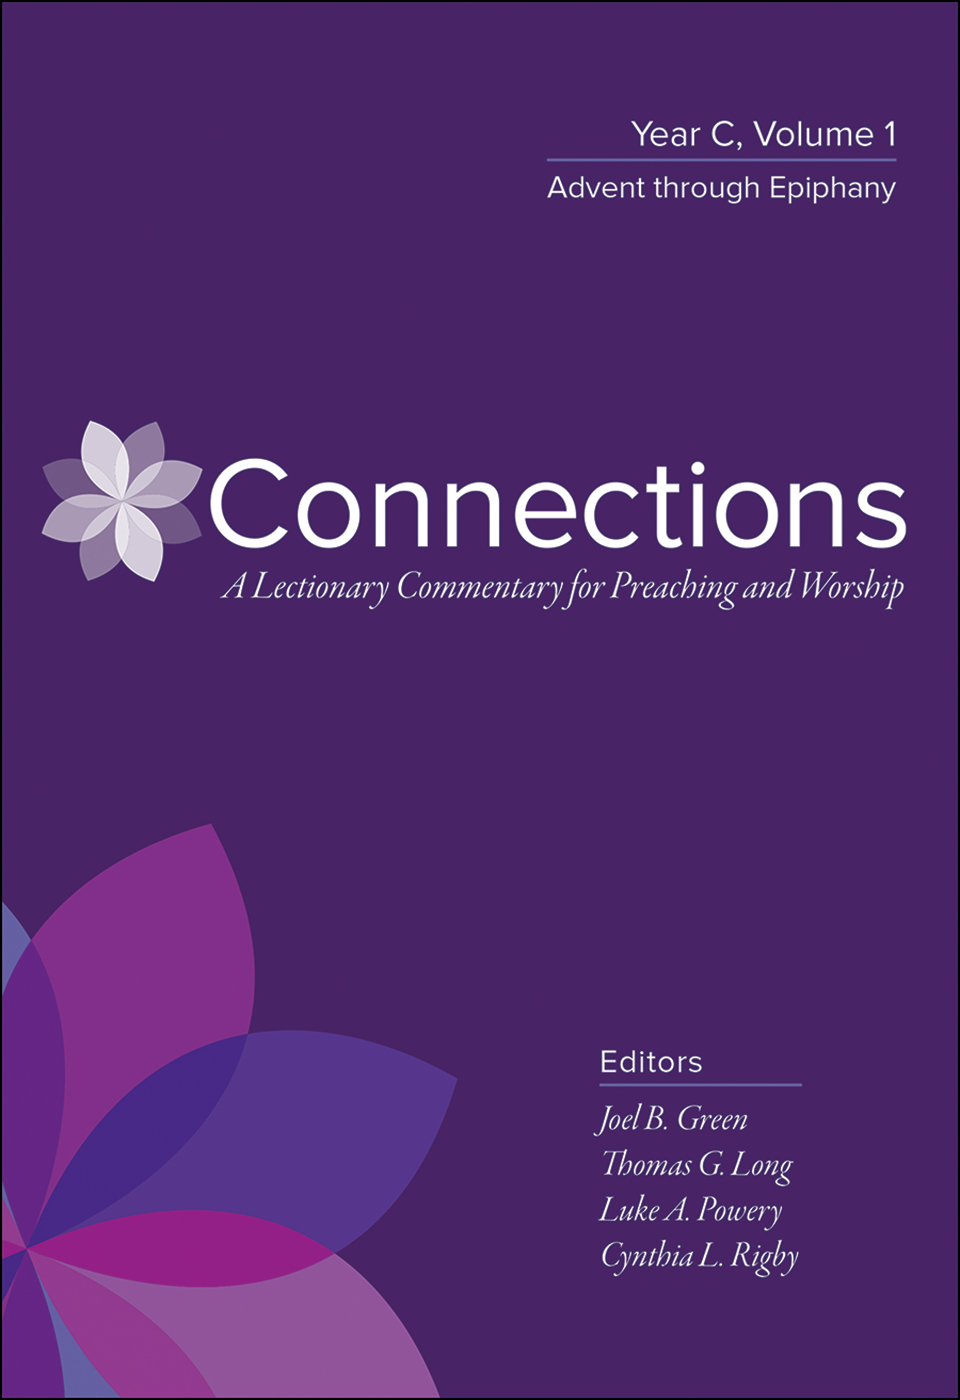 Connections: Year C, Volume 1